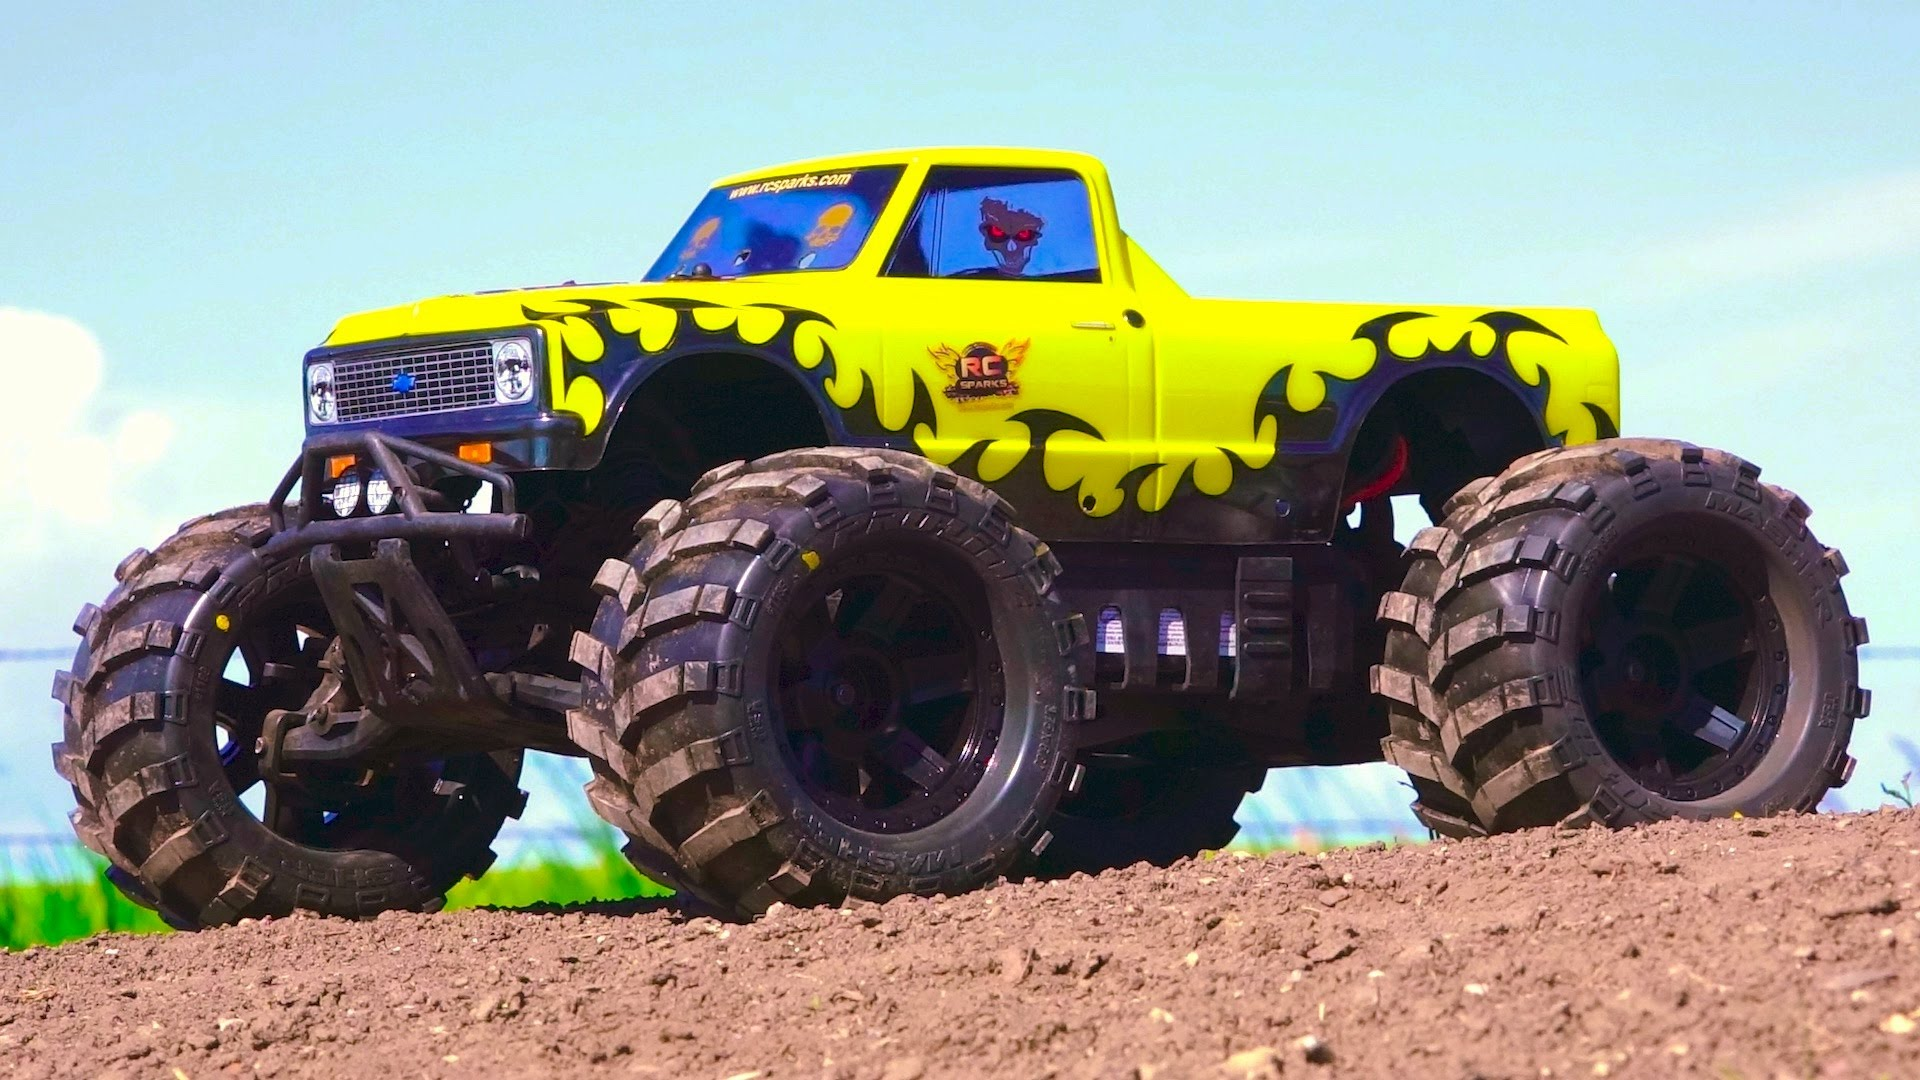 4×4 Off Road >> LegendaryFinds - Page 9 of 809 - Awesome hot rods and muscle cars from around the web!